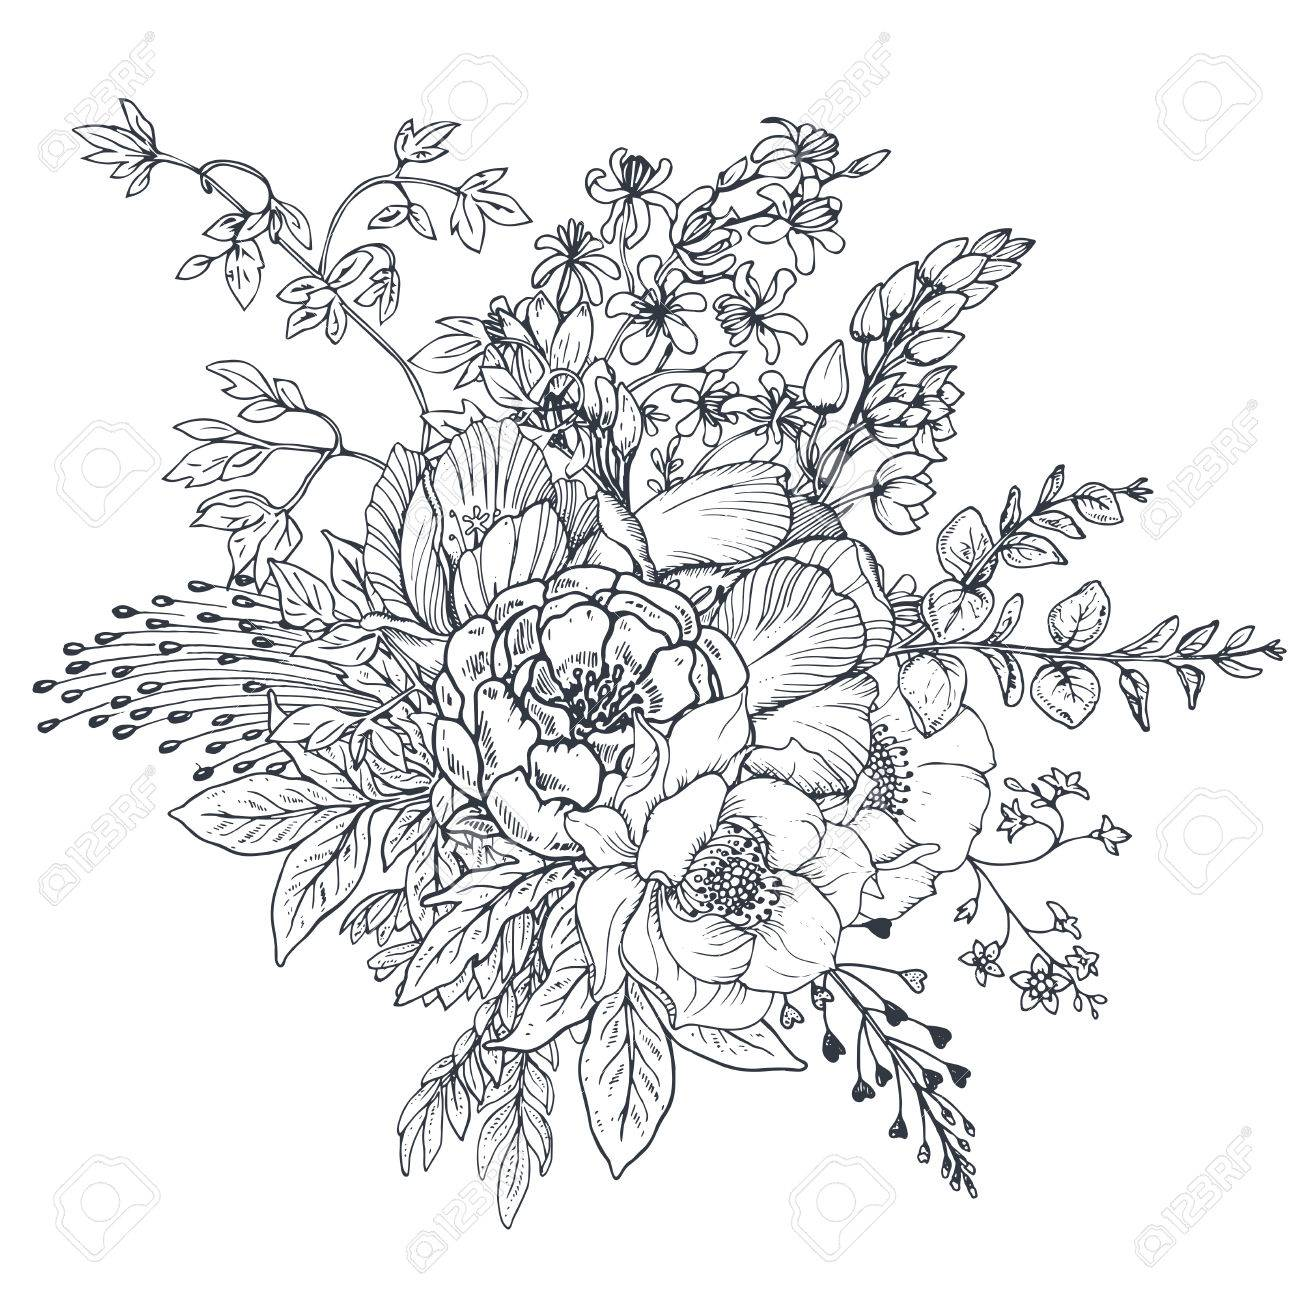 Floral Composition Bouquet With Hand Drawn Flowers And Plants Royalty Free Cliparts Vectors And Stock Illustration Image 71424335